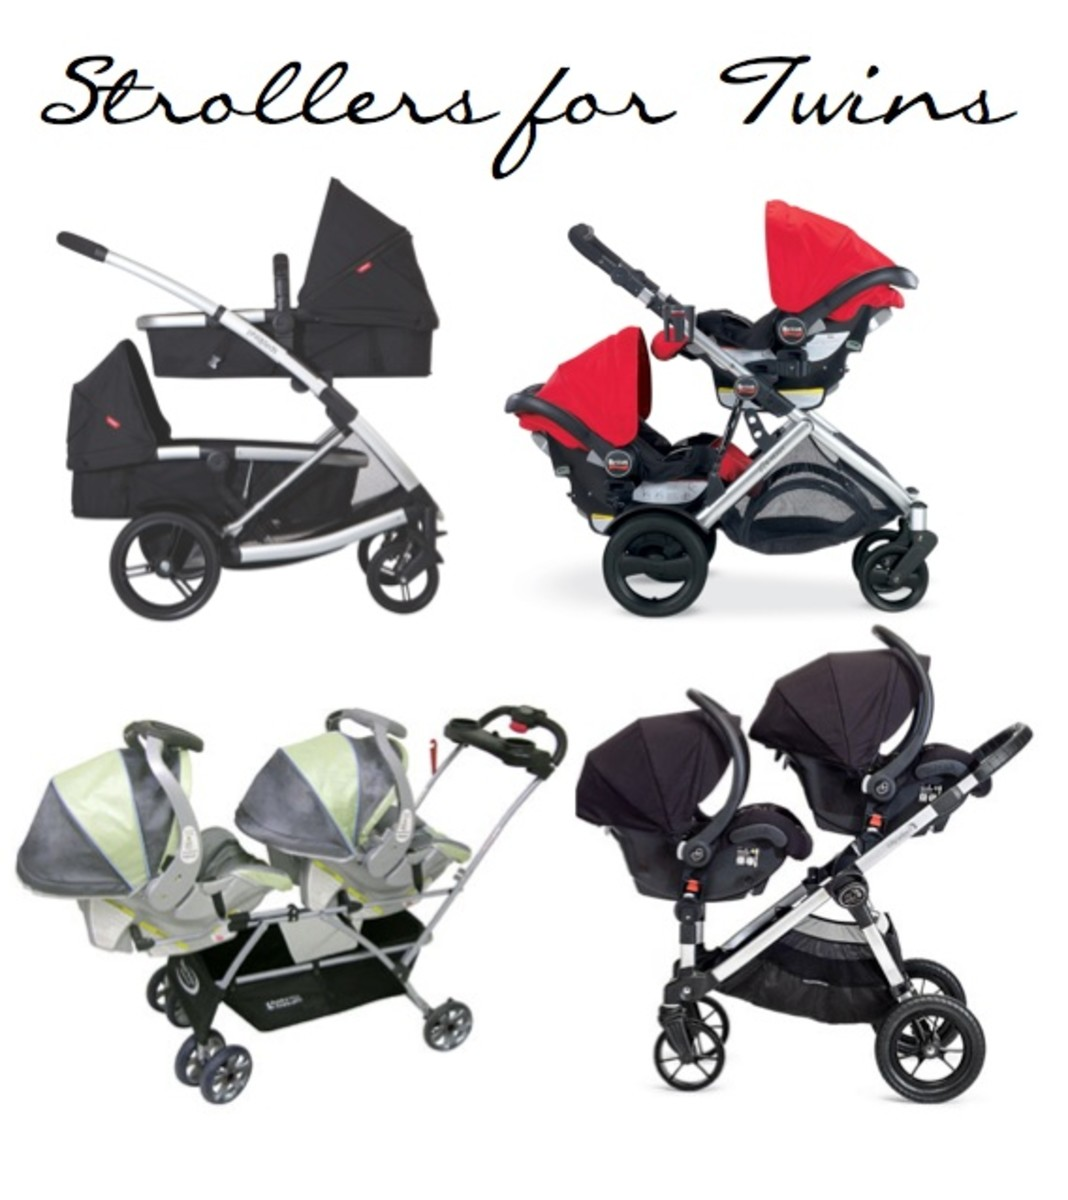 Combi Double Stroller Side By Side Combi Double Stroller On Vimeo Vqibvianm3e S Diary